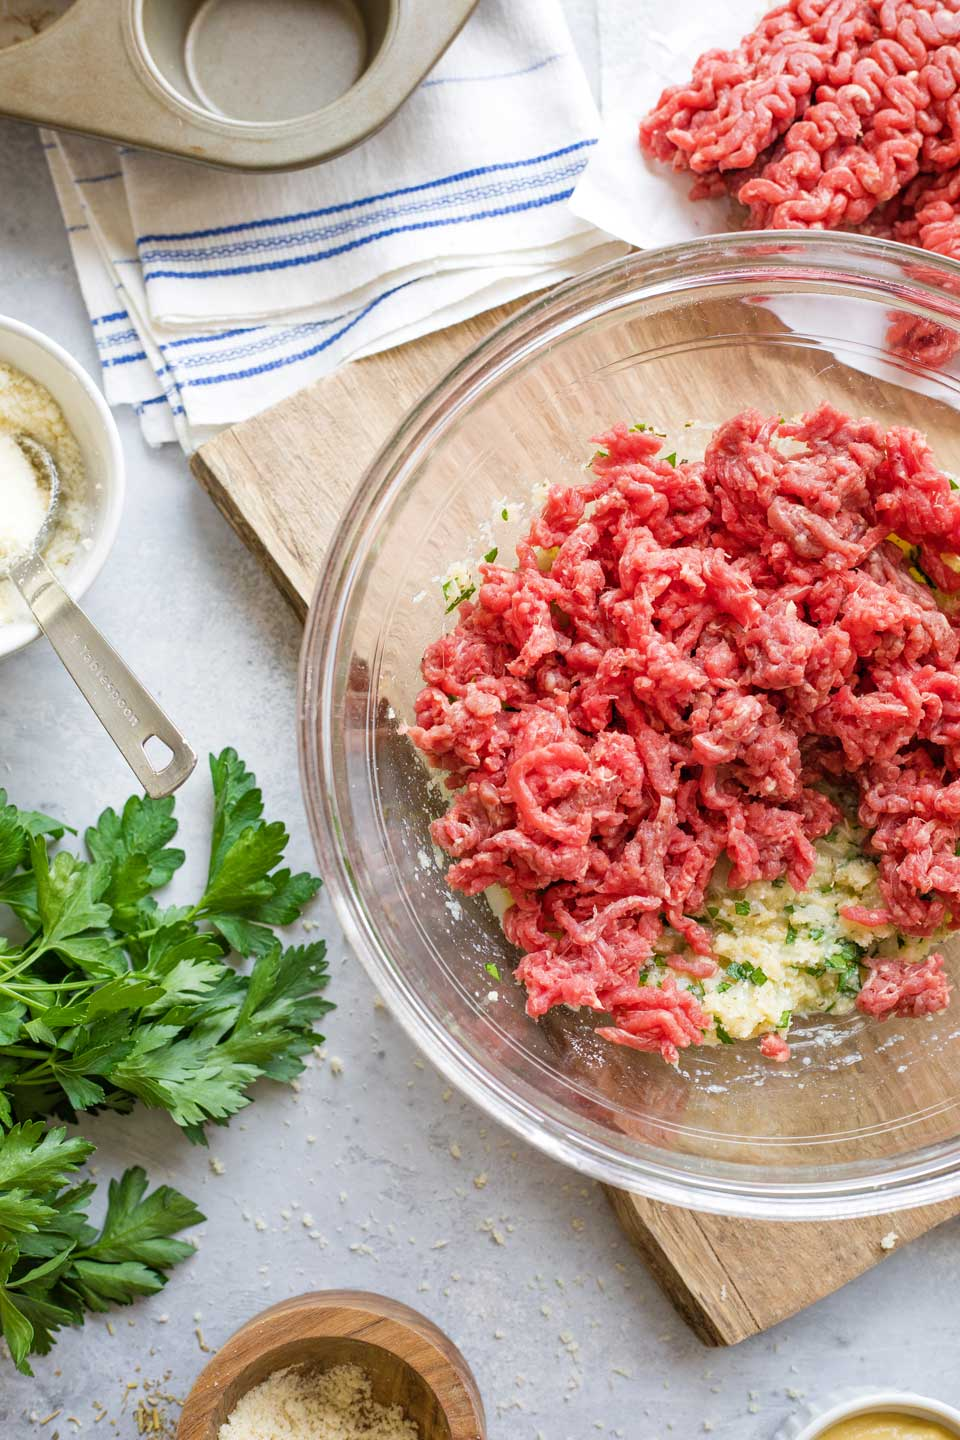 Ground beef crumbled into mixing bowl on top of other meatloaf ingredients.